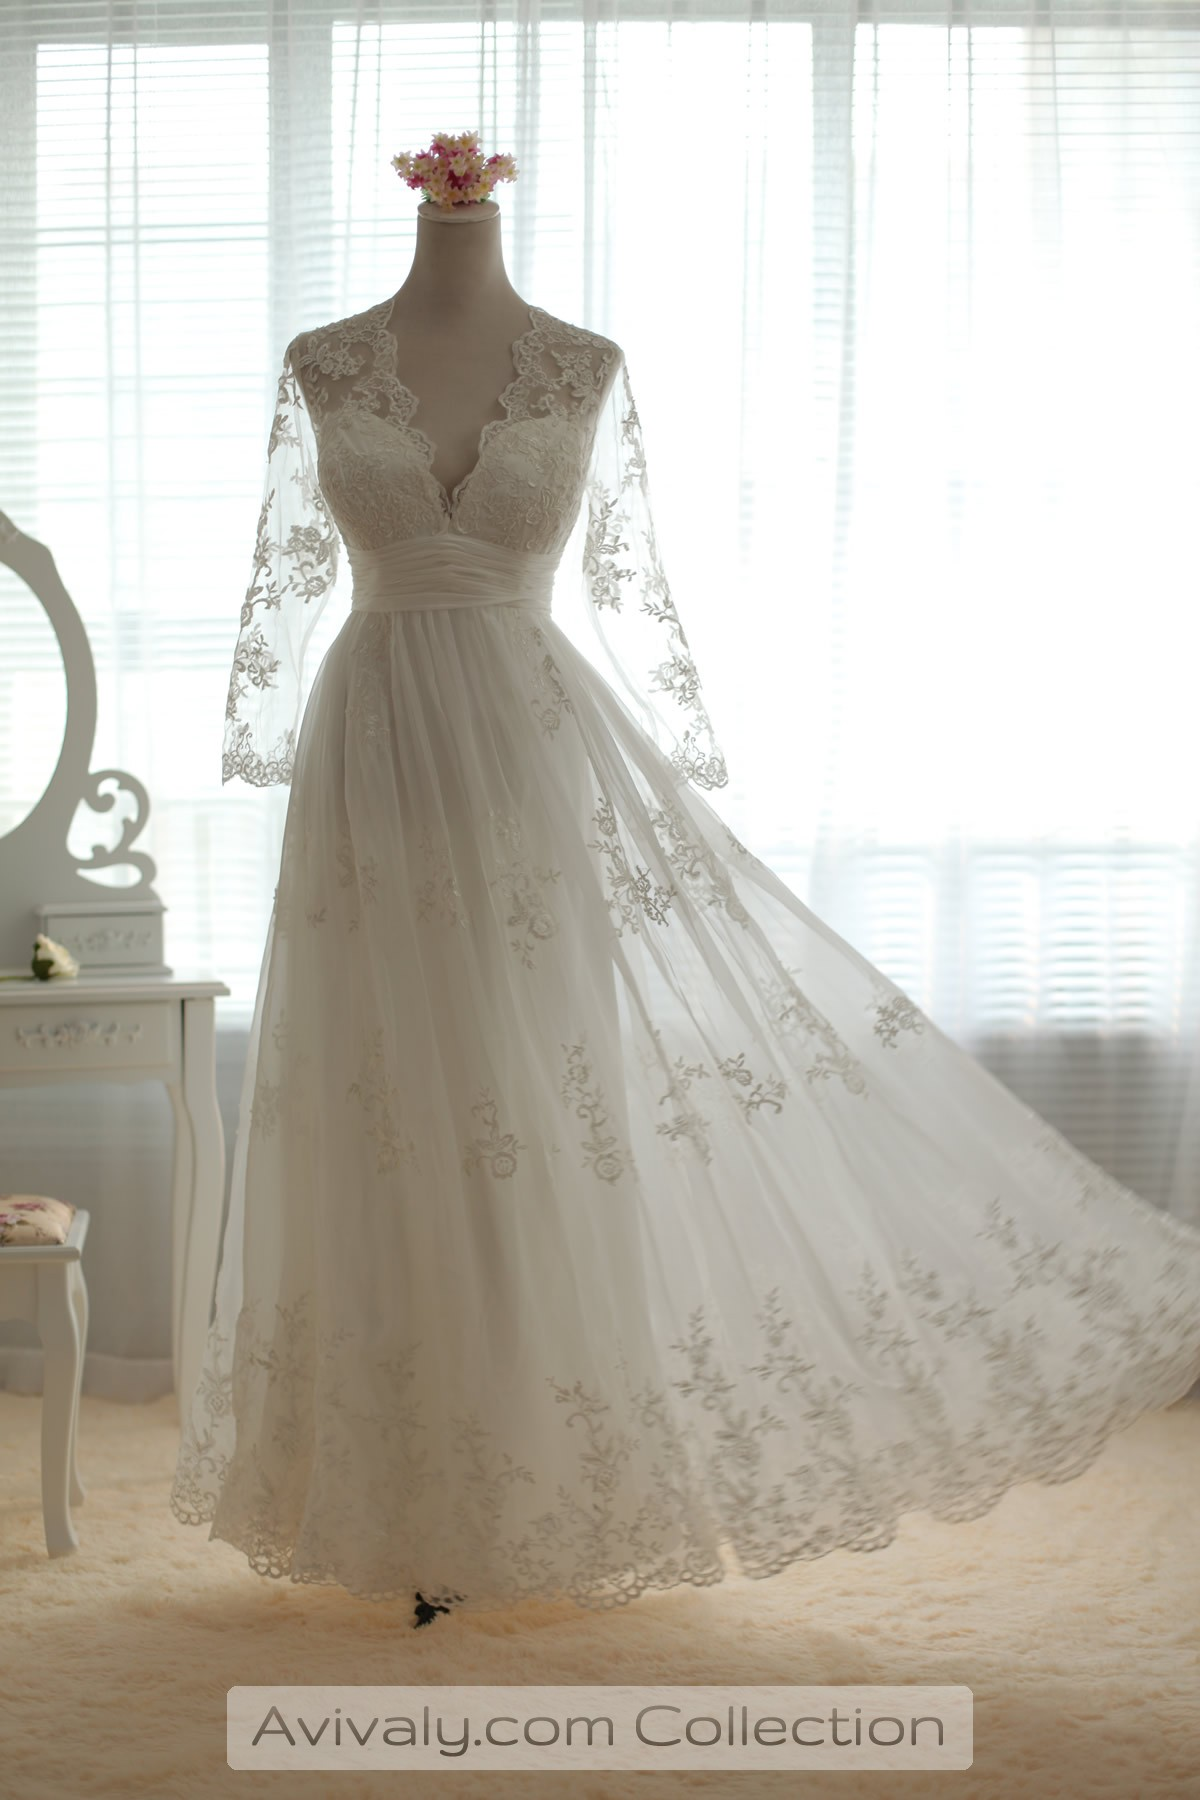 Lilian Sheer Long Sleeves Floral Lace Wedding Dress